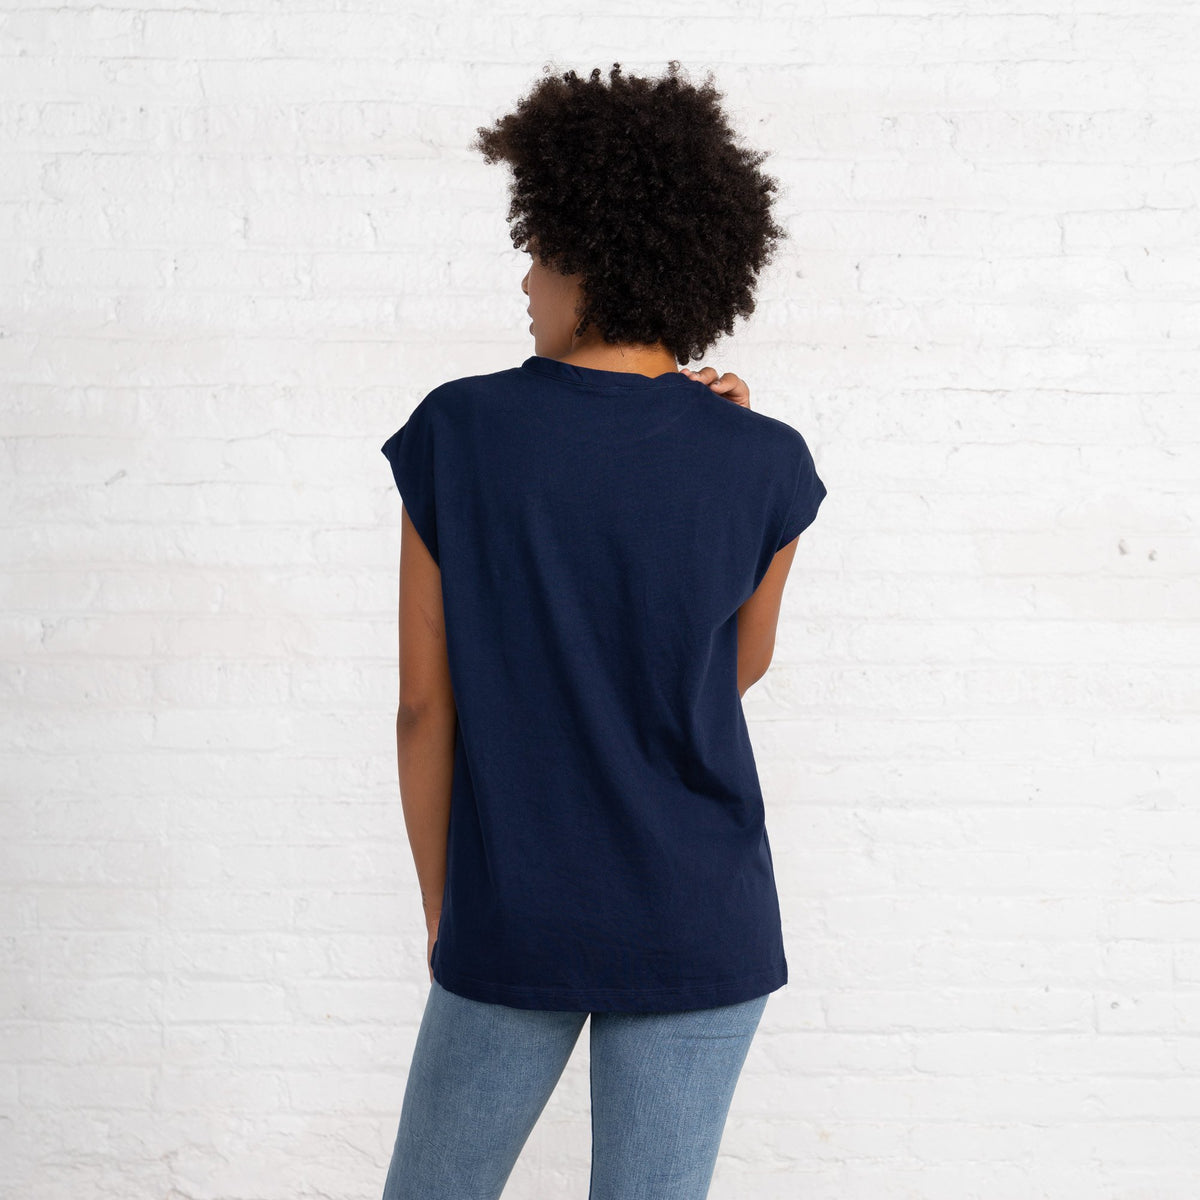 Dolman T Color:Navy Combed Cotton New T-shirts Women's T-shirts